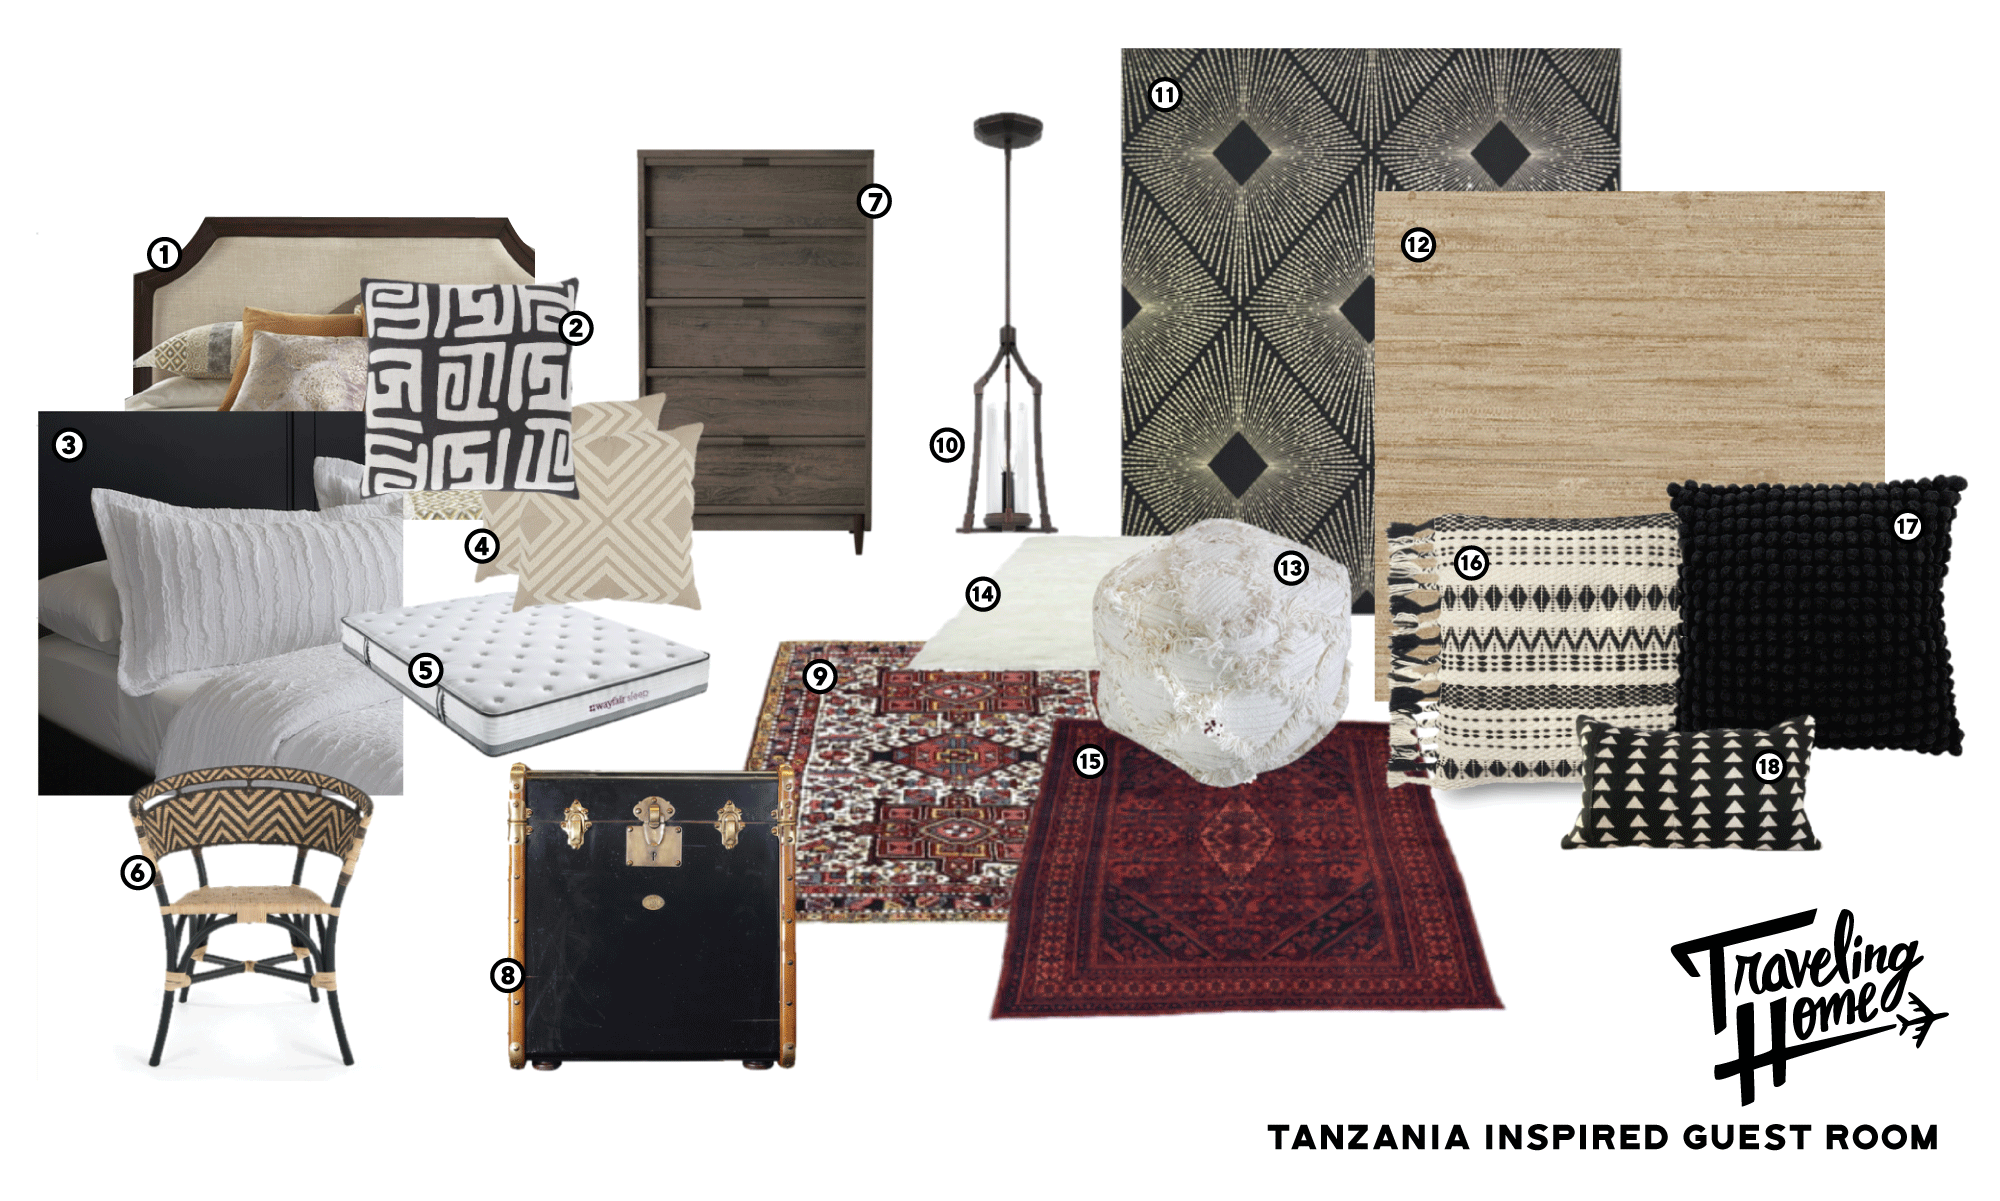 Shop Traveling Home Episode 3: Tanzania Inspired Guest Room